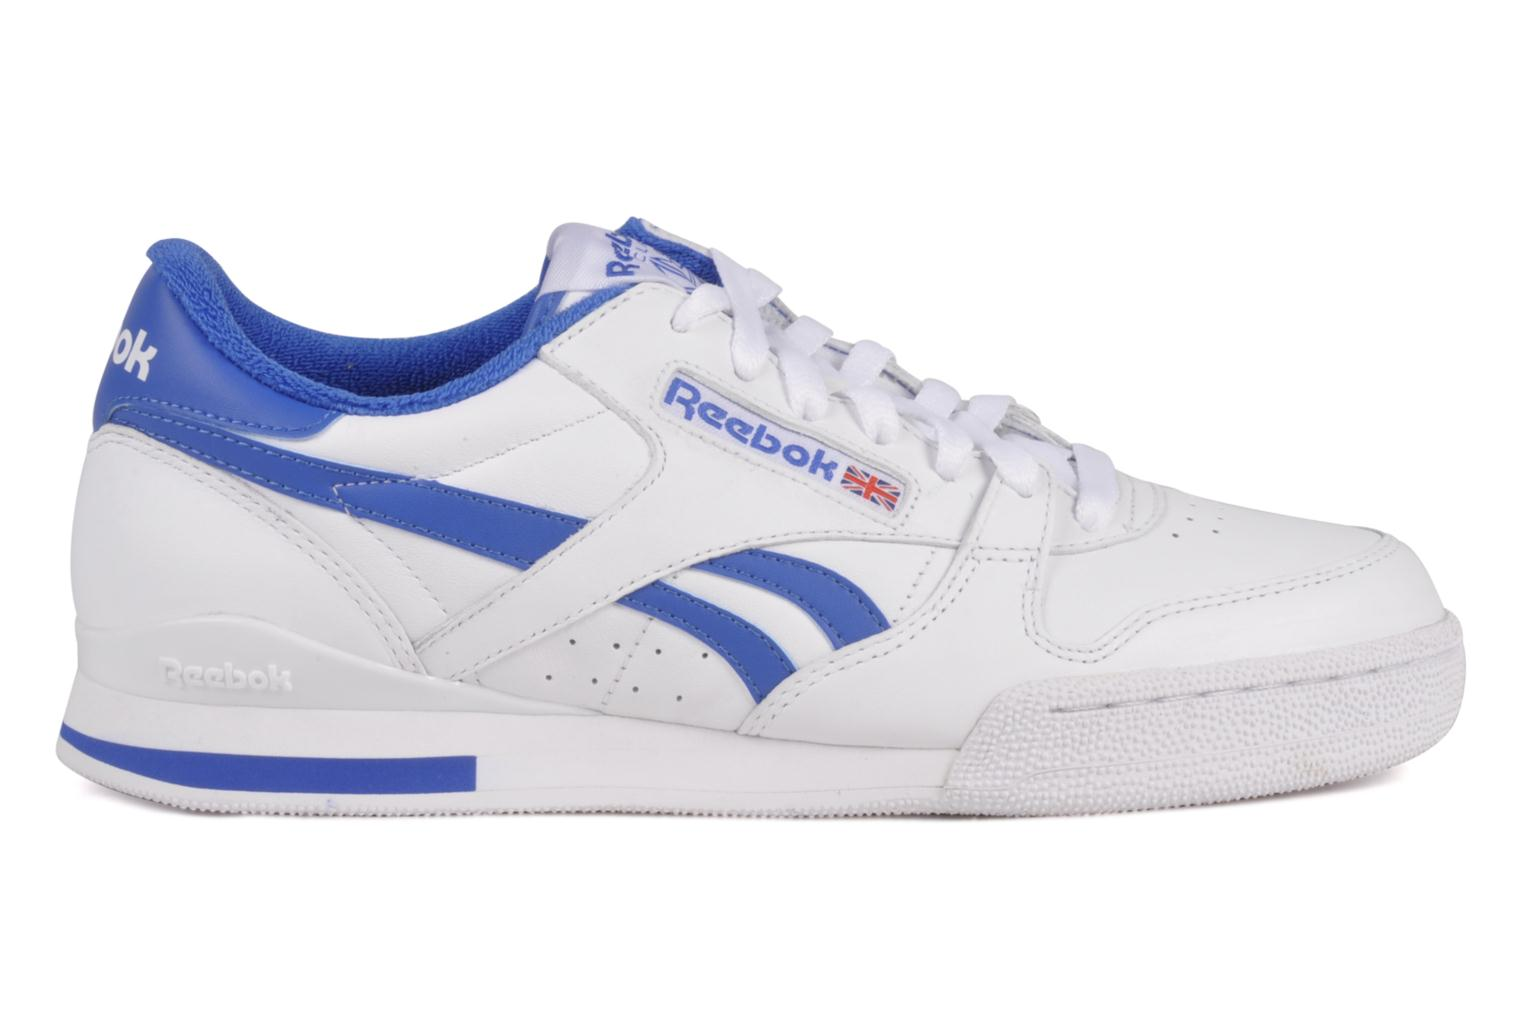 Reebok Phase 1 pro Trainers in White at Sarenza.co.uk (48824)